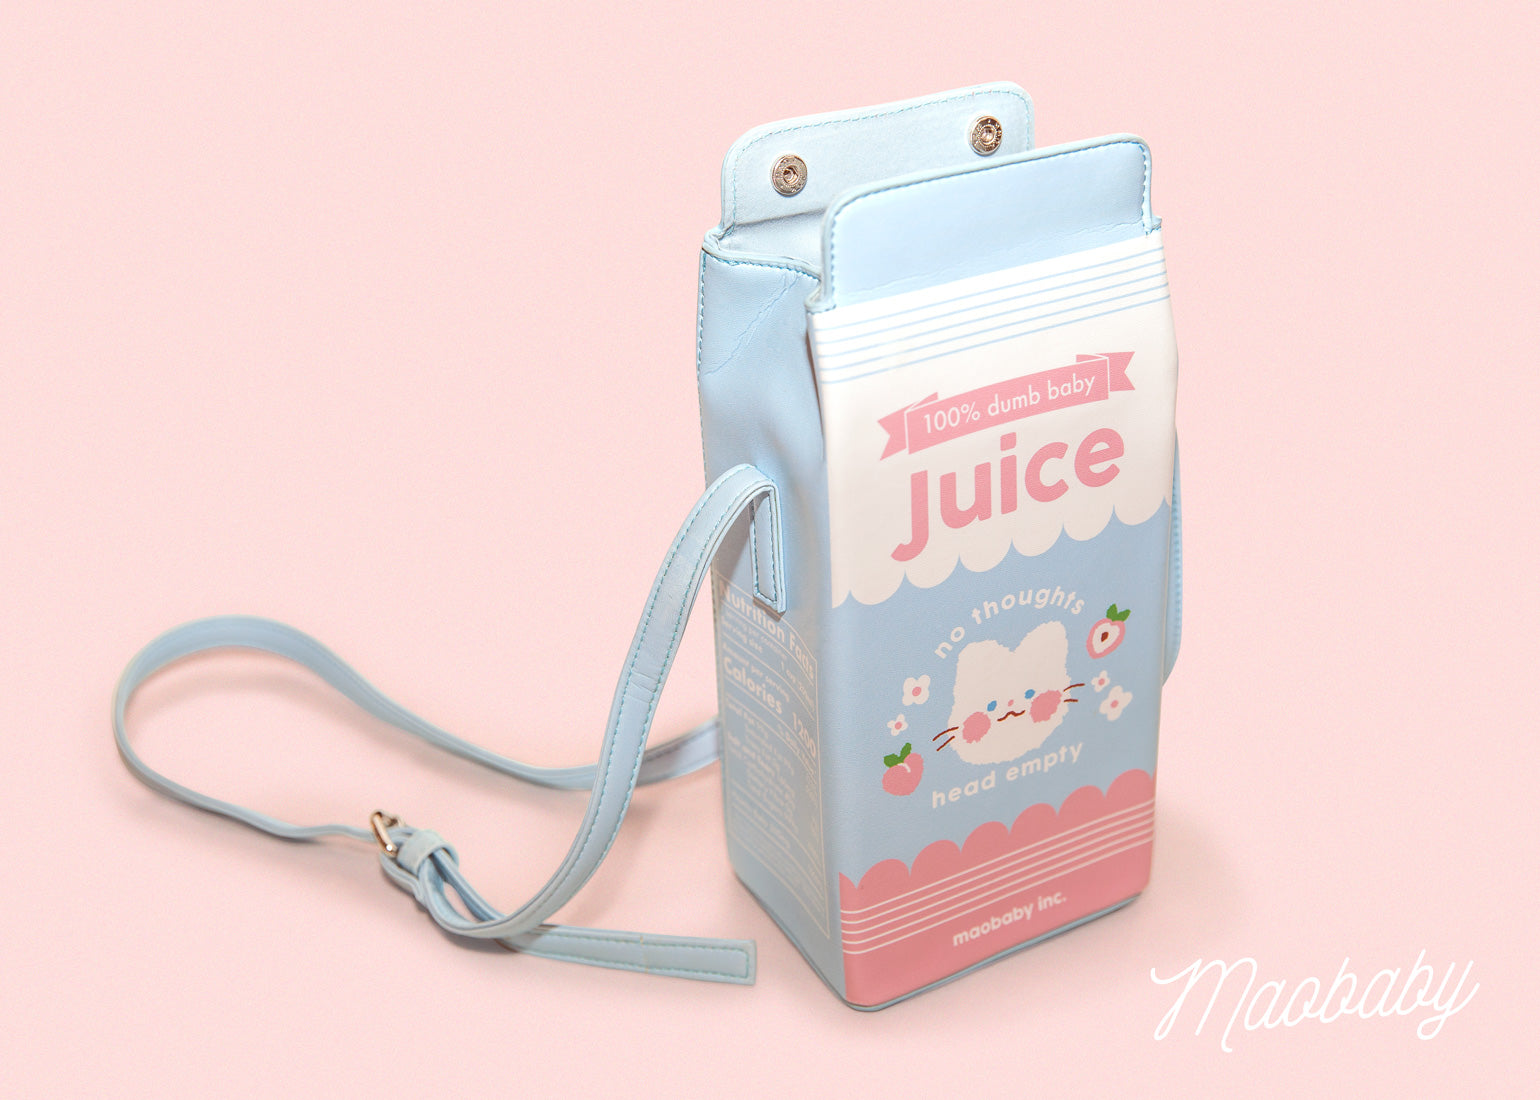 Juicebox Crossbody Purse